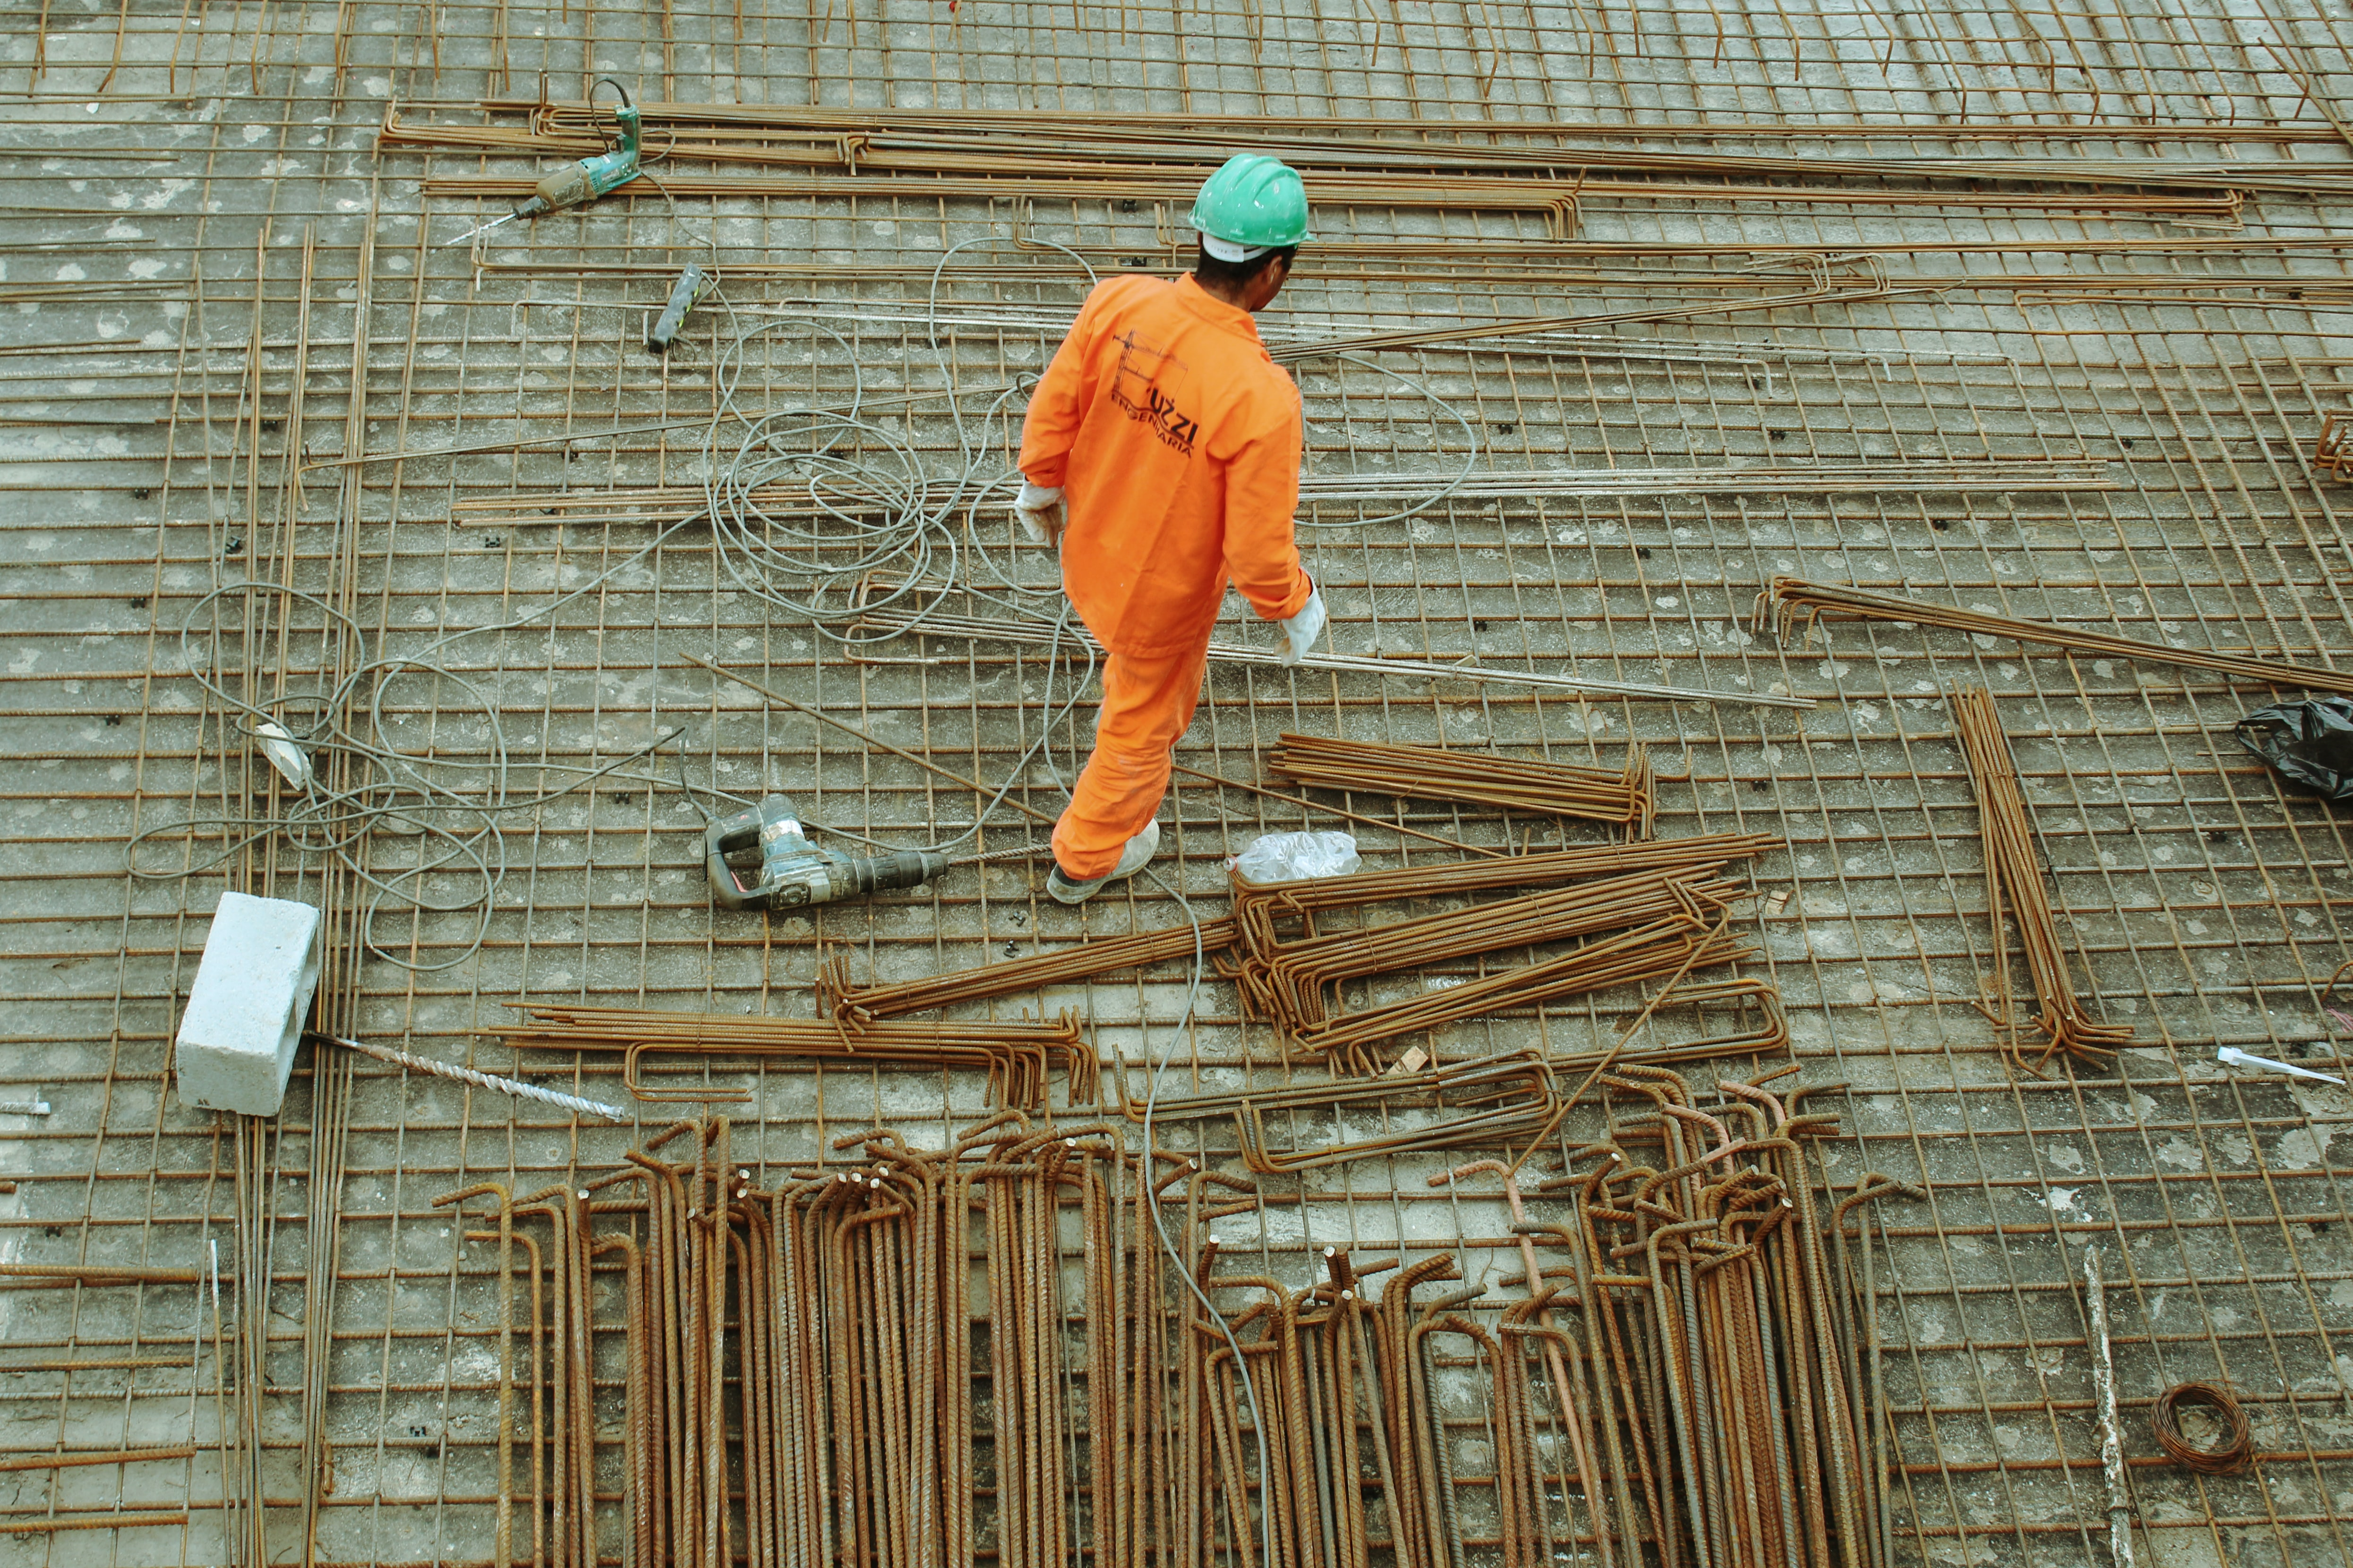 A construction worker near metal rods at a construction site